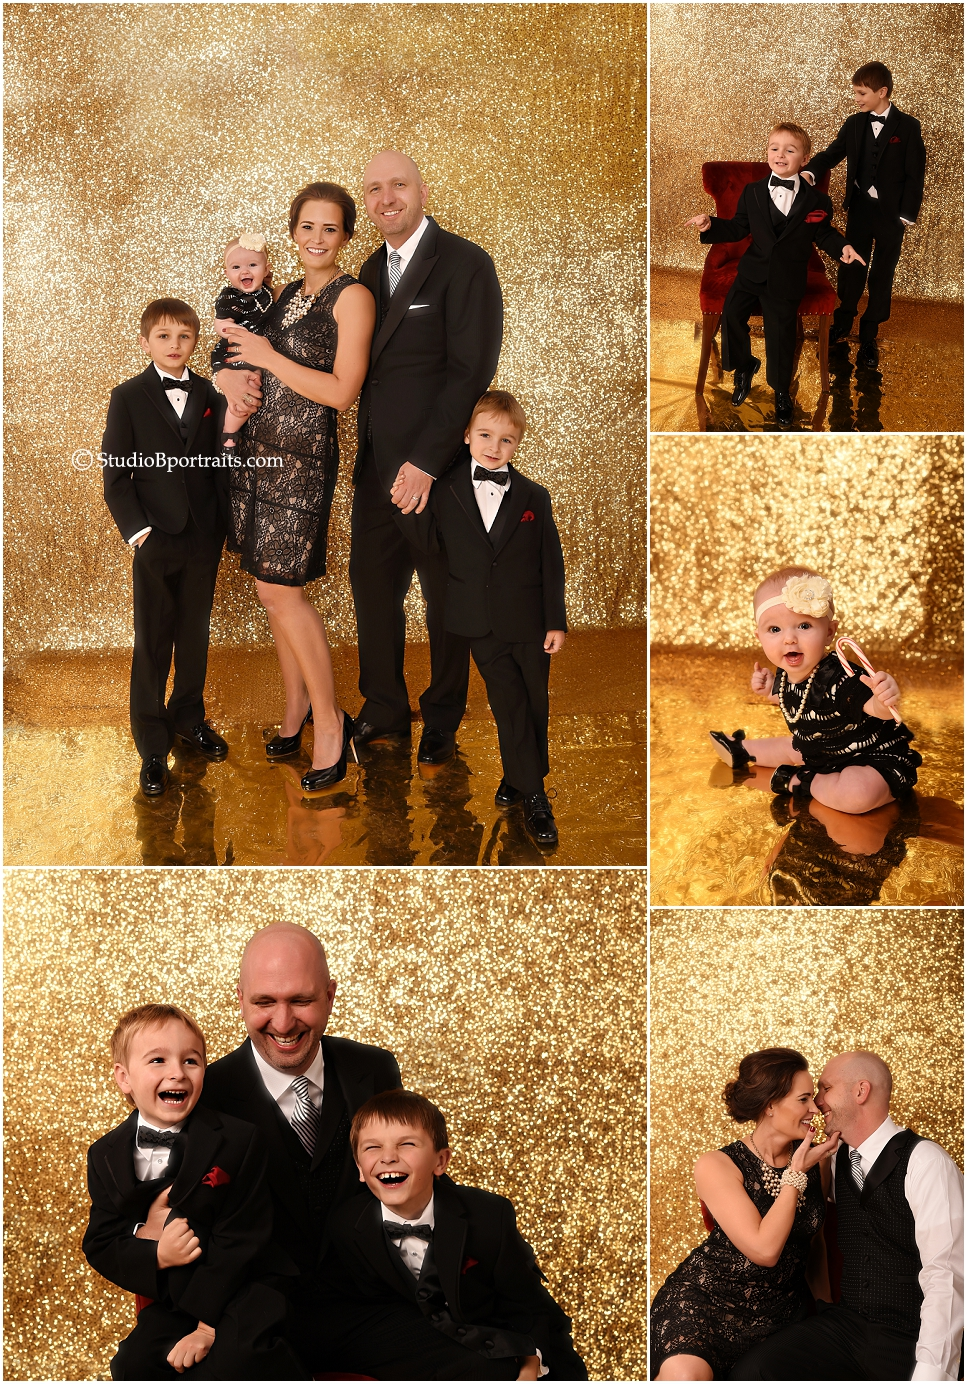 Putting the fun in formal black tie family portraits at Studio B near Bellevue WA